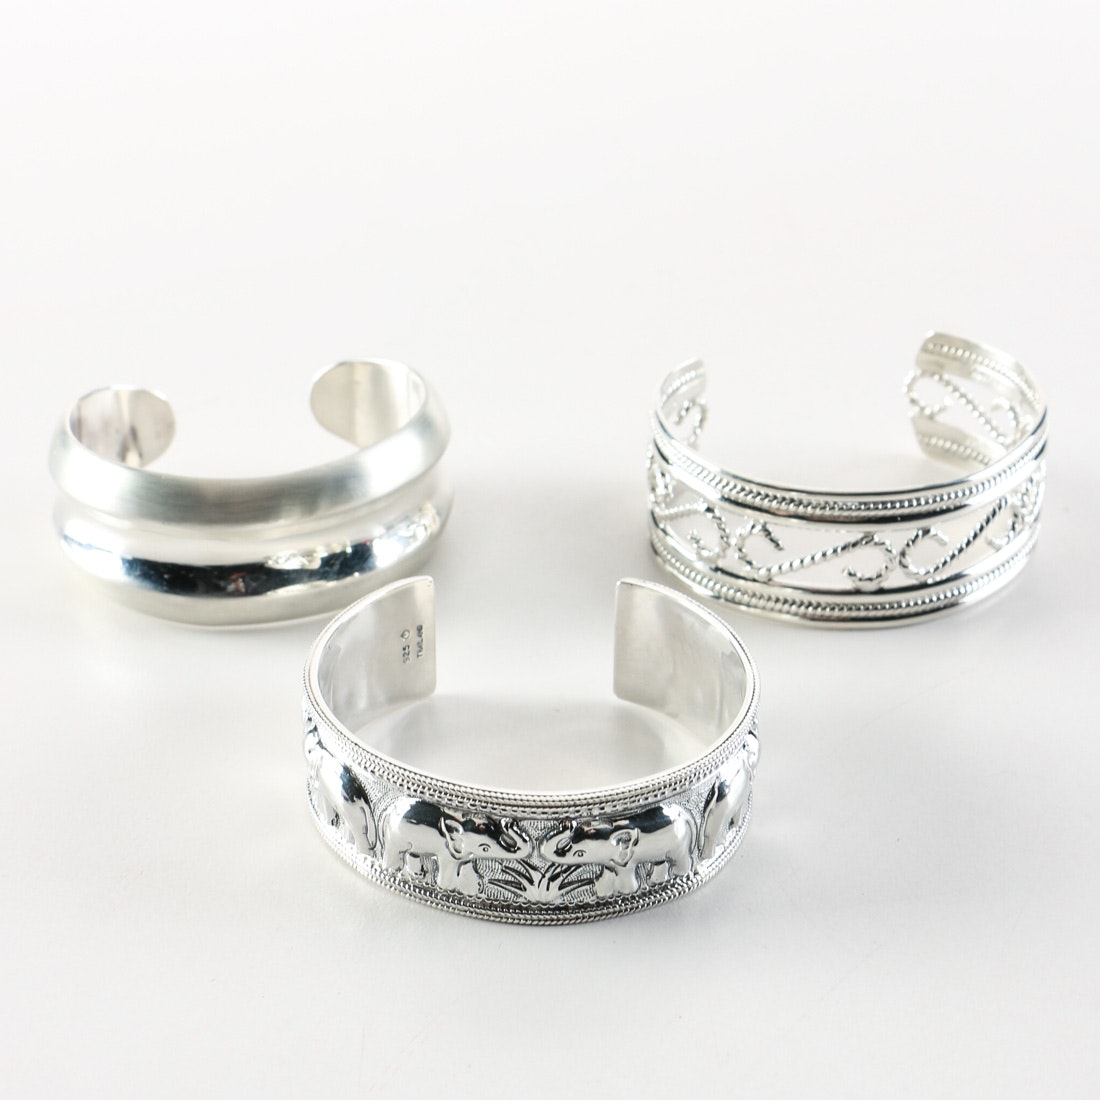 Group of Sterling Silver Cuff Bracelets